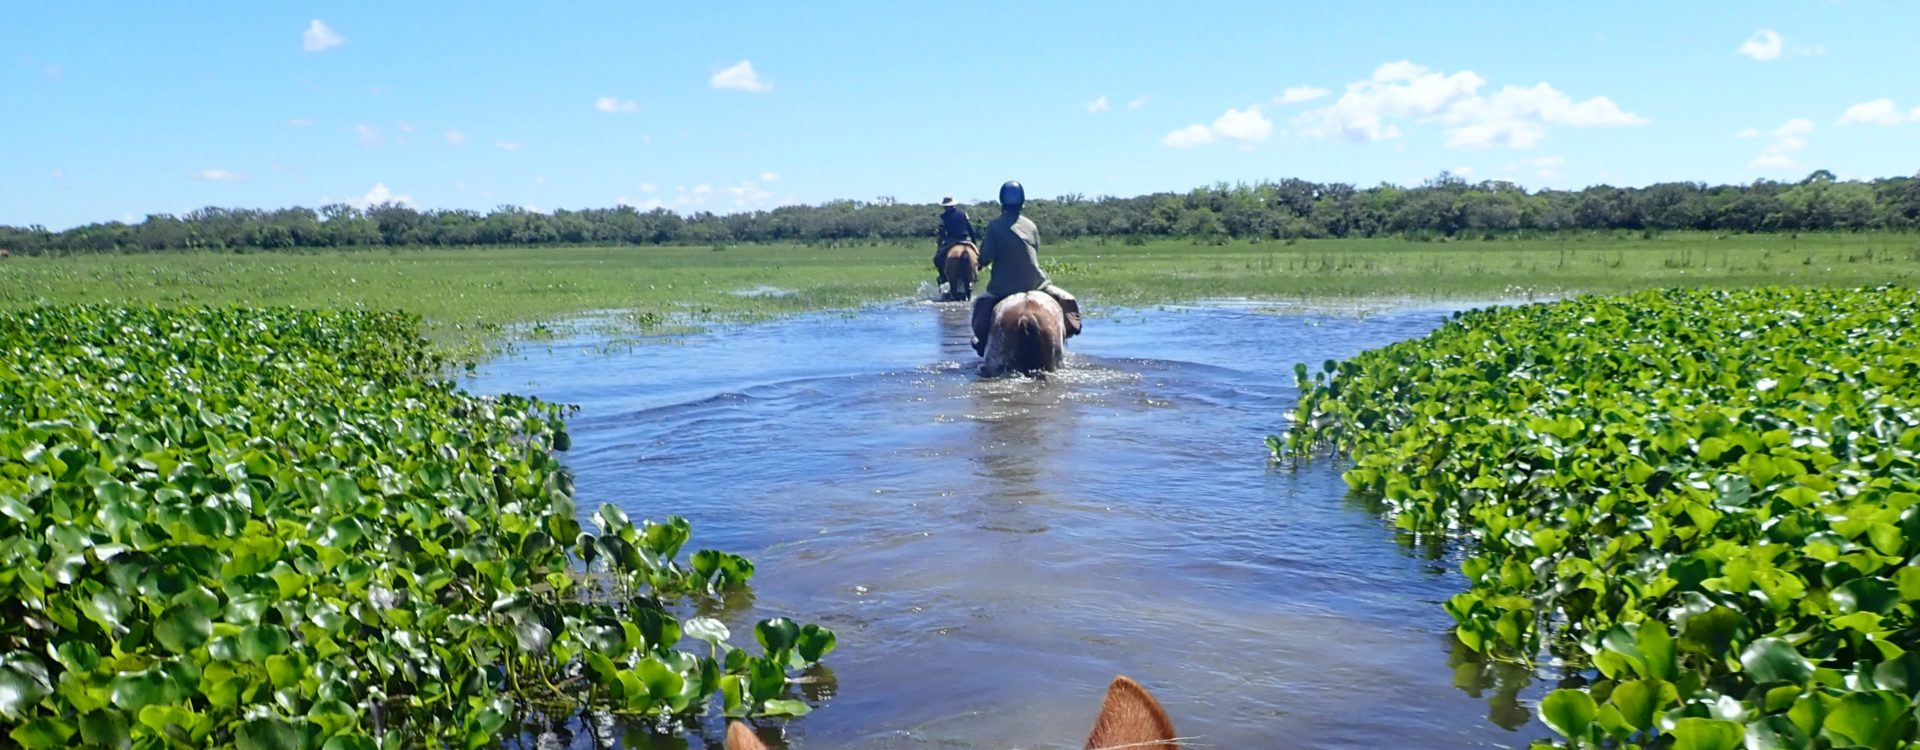 Horse Riding in Uruguay